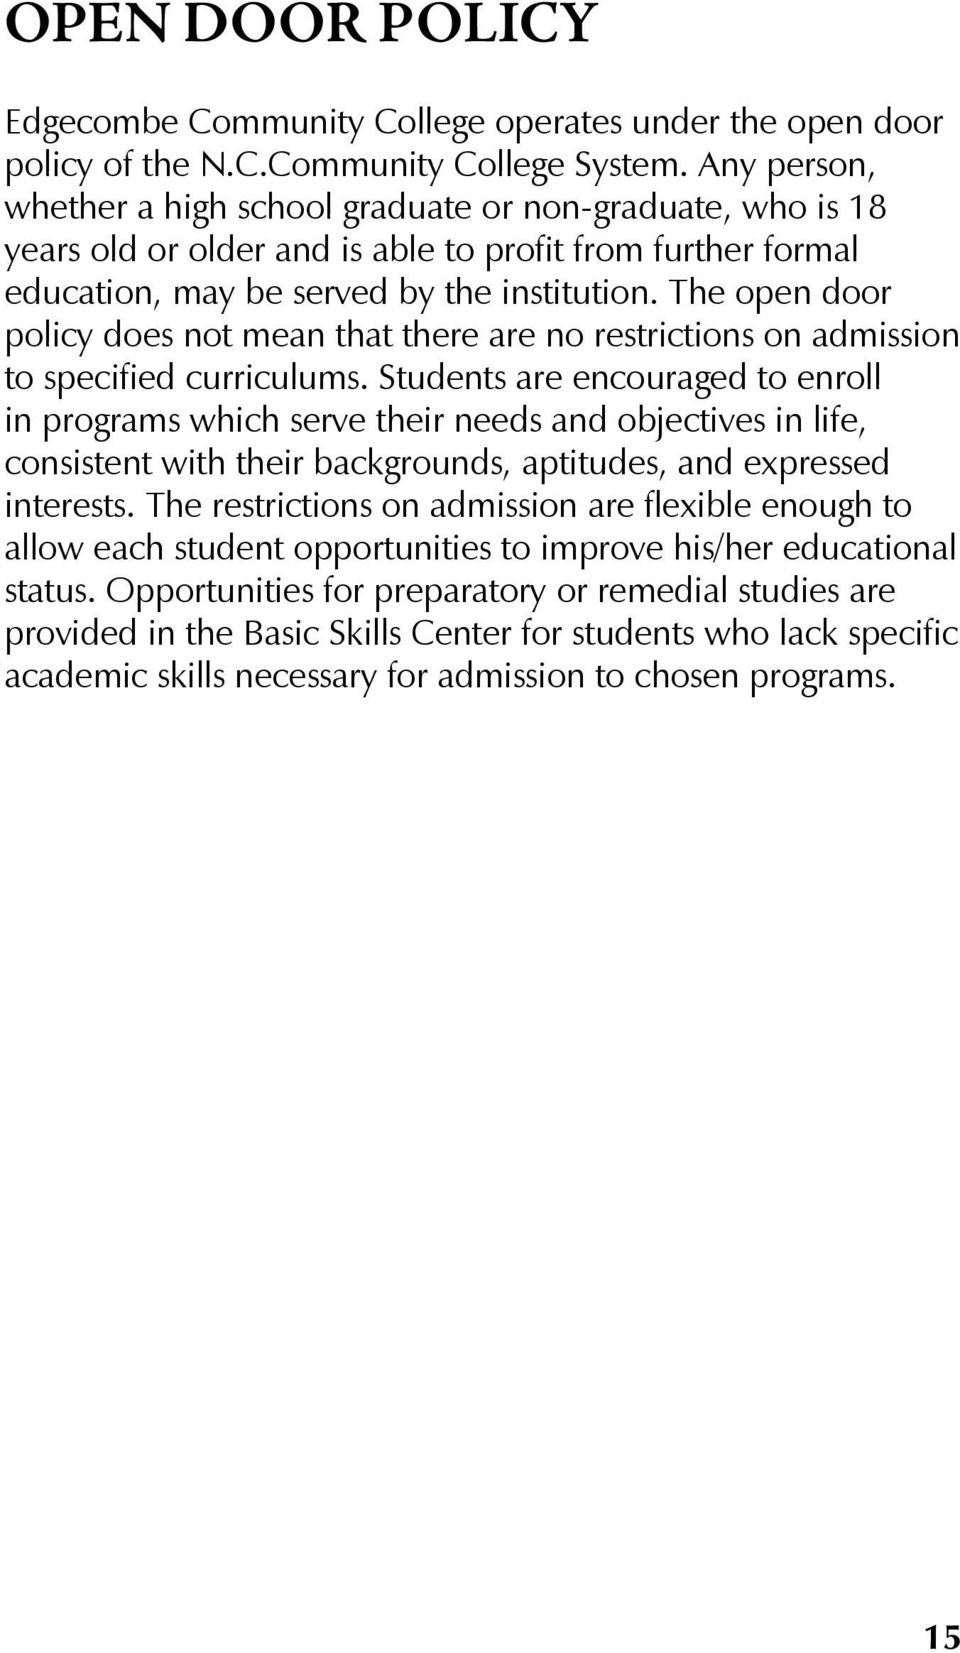 The open door policy does not mean that there are no restrictions on admission to specified curriculums.